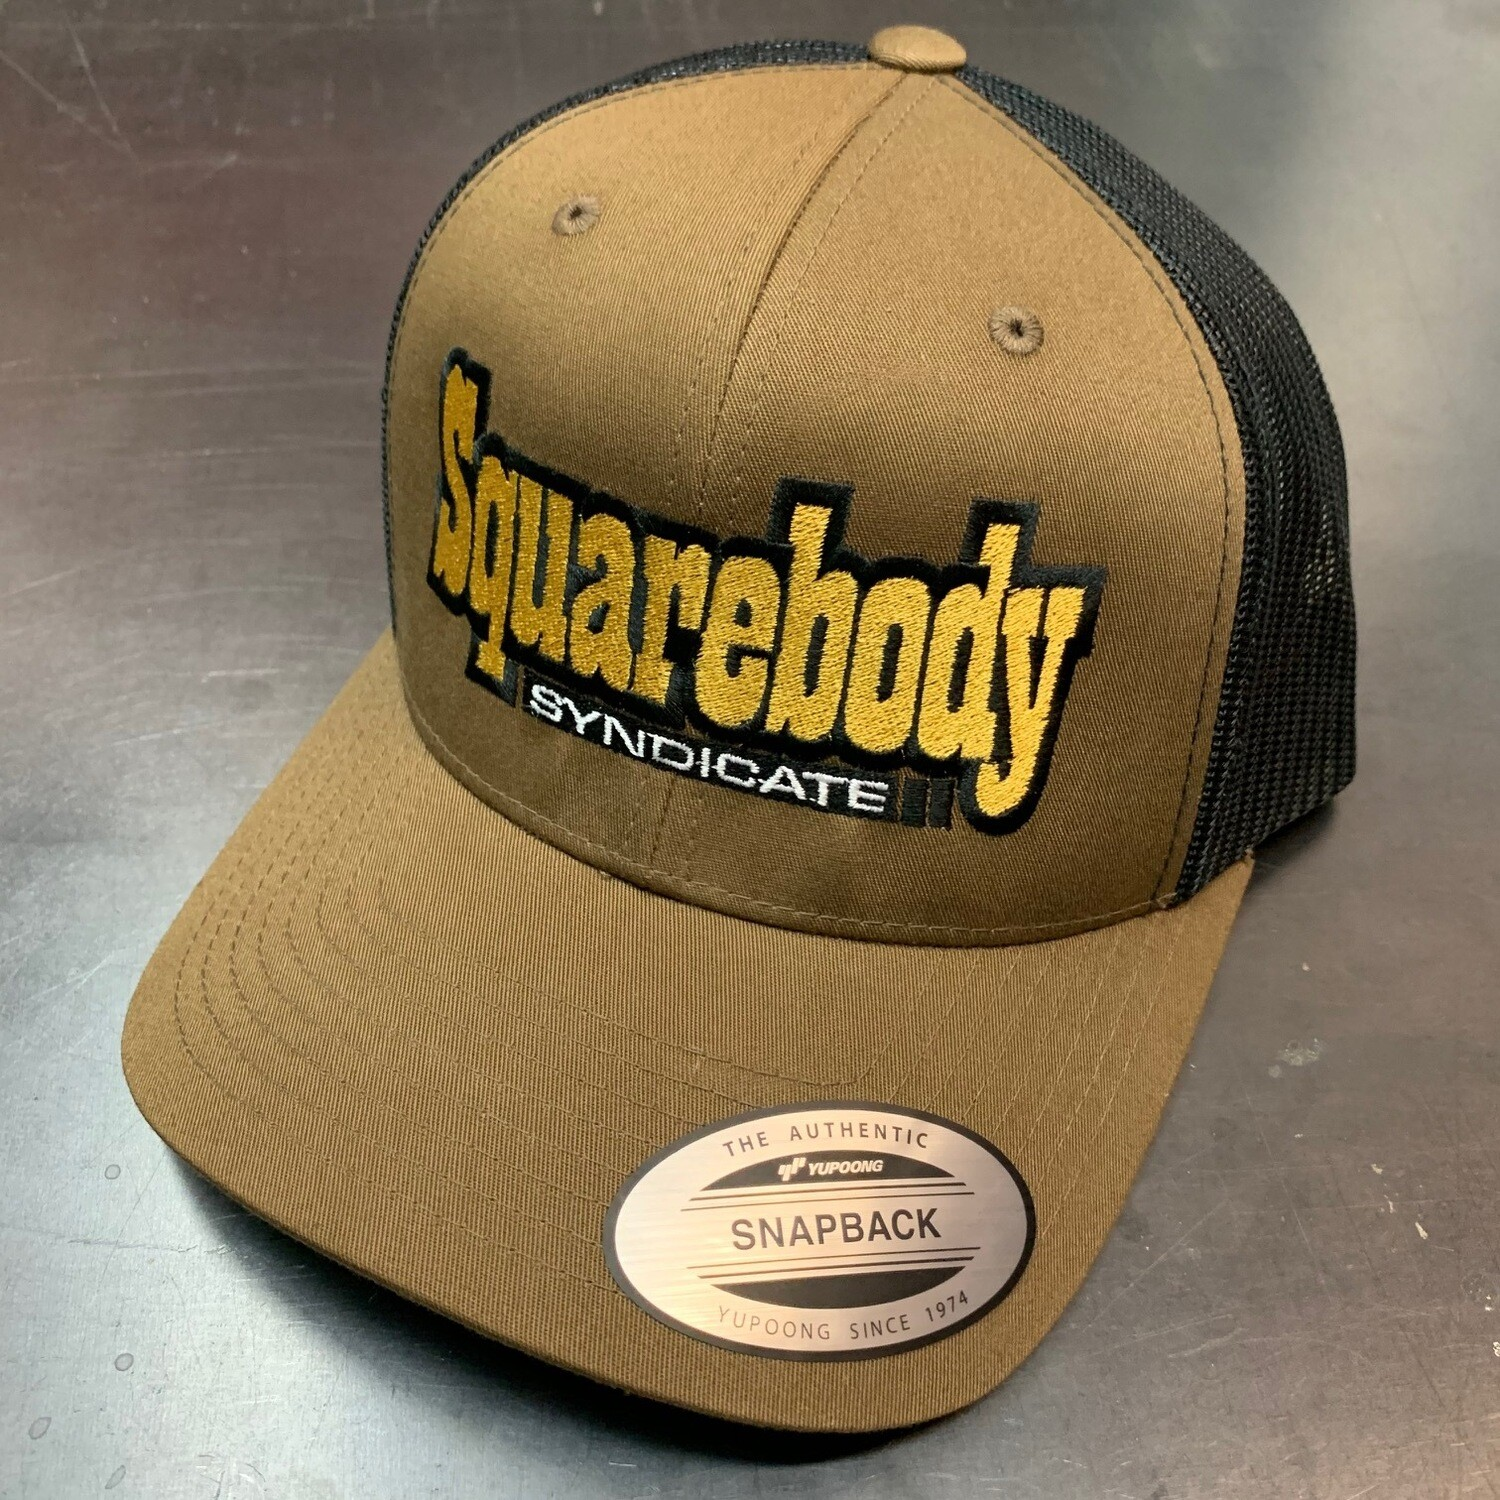 NEW LIMITED COYOYE BROWN AND BLACK SNAPBACK RETRO TRUCKER MESH SBS LOGO #2 HAT